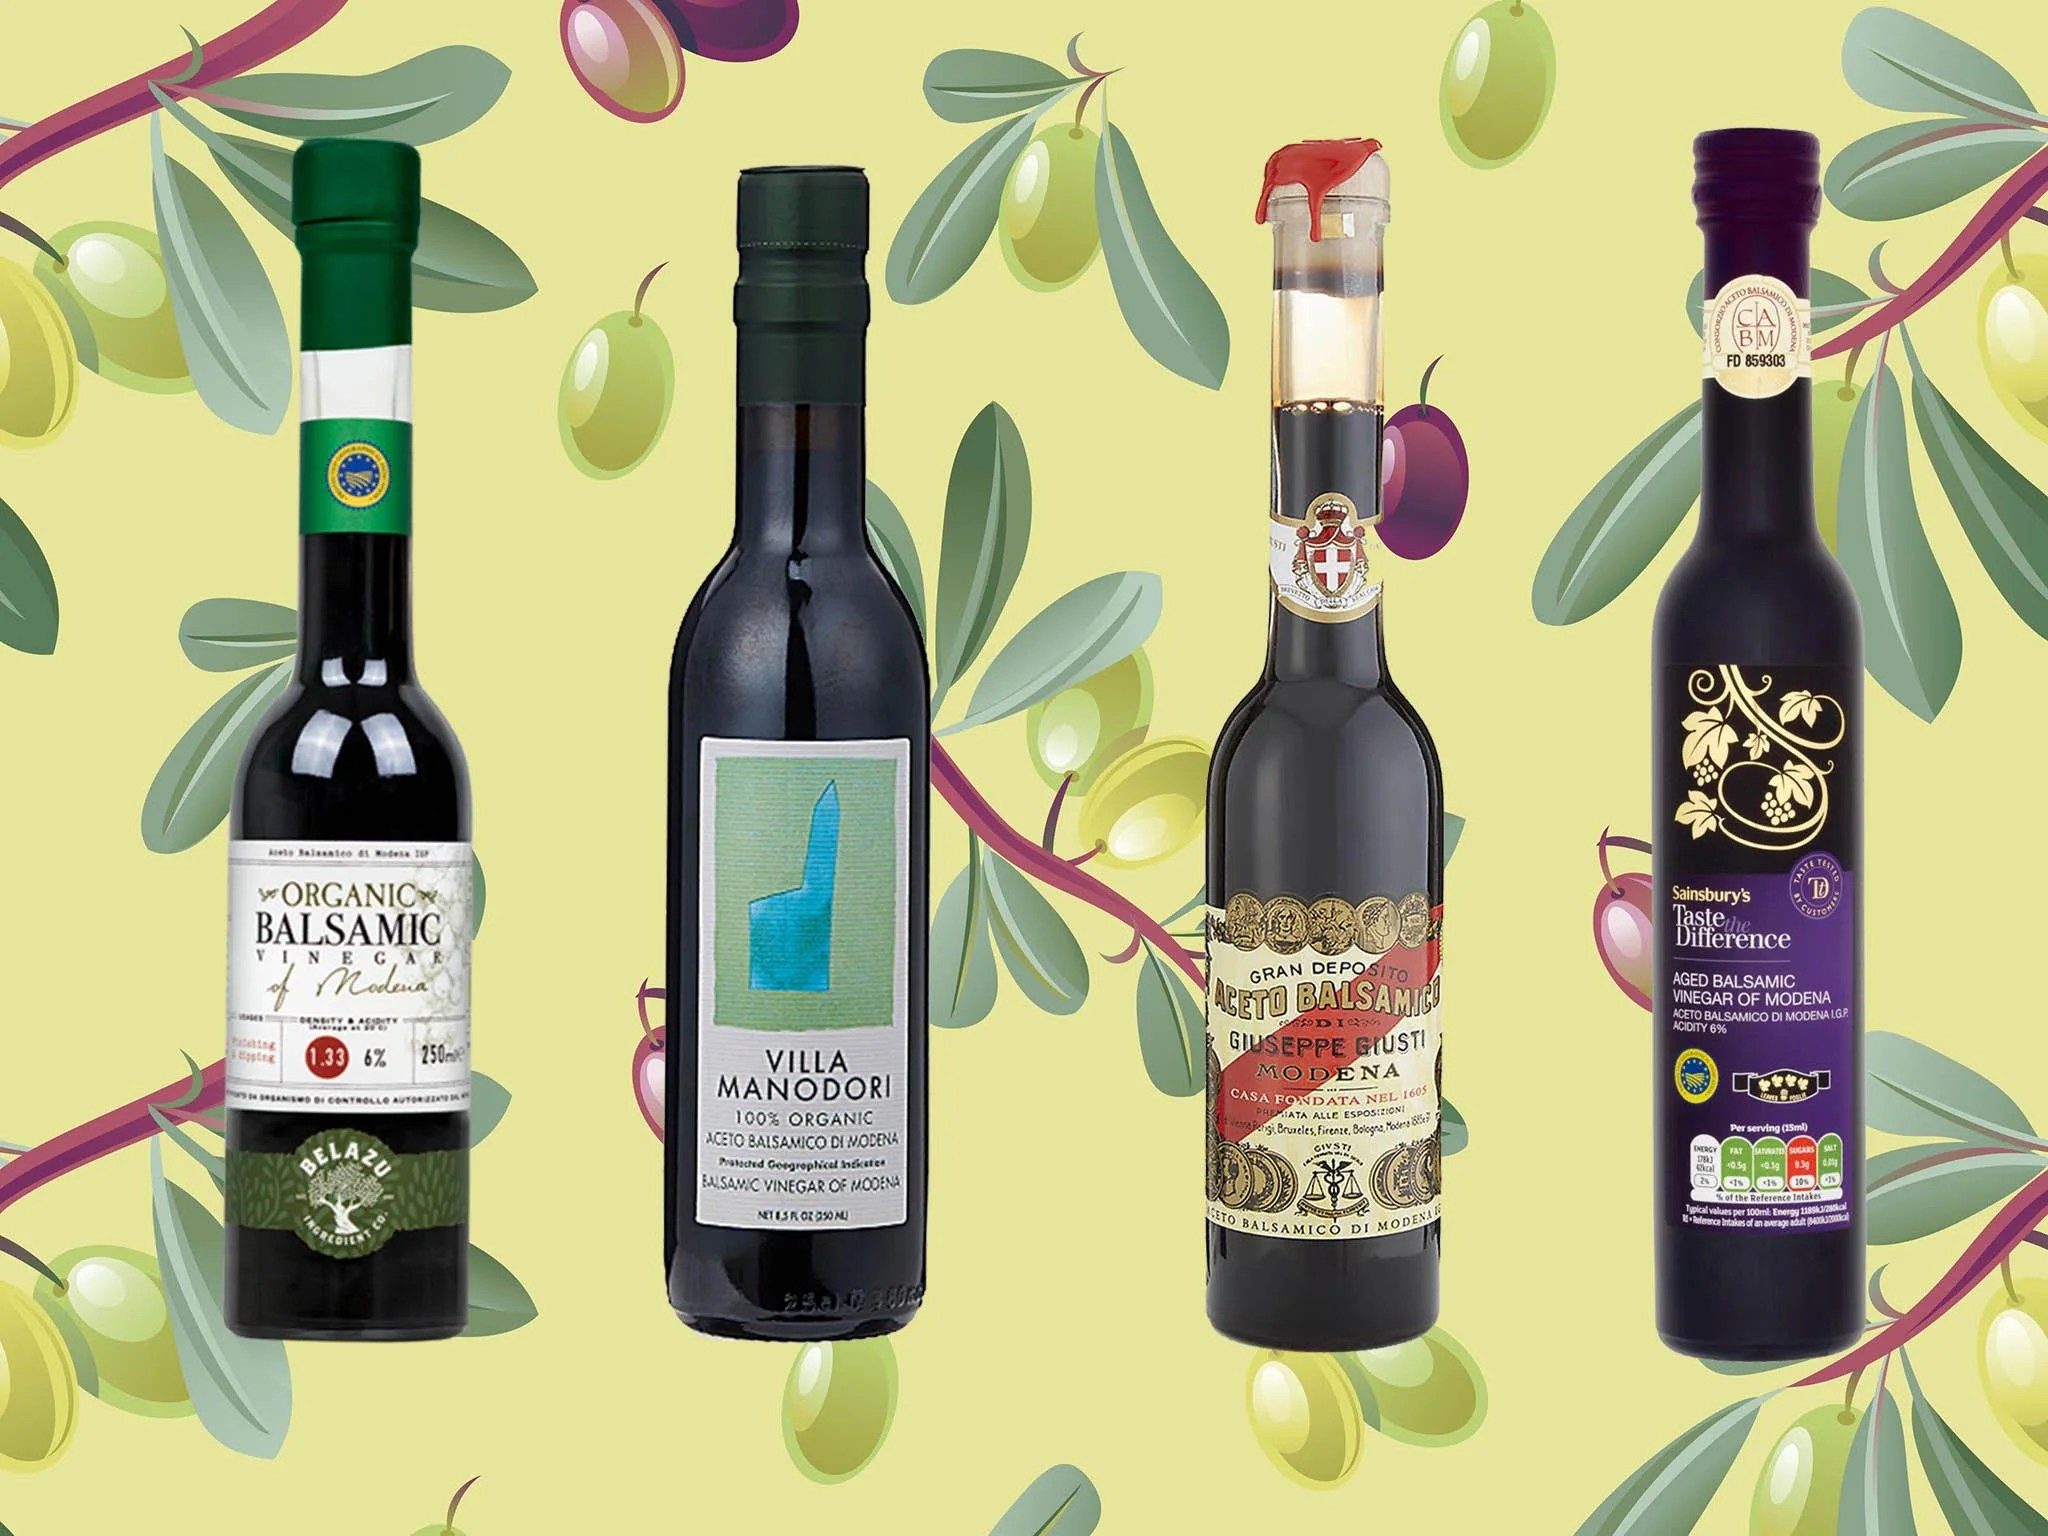 Cucina Antica Tomato Basil Uk Best Balsamic Vinegars To Always Have On Hand In Your Cupboard